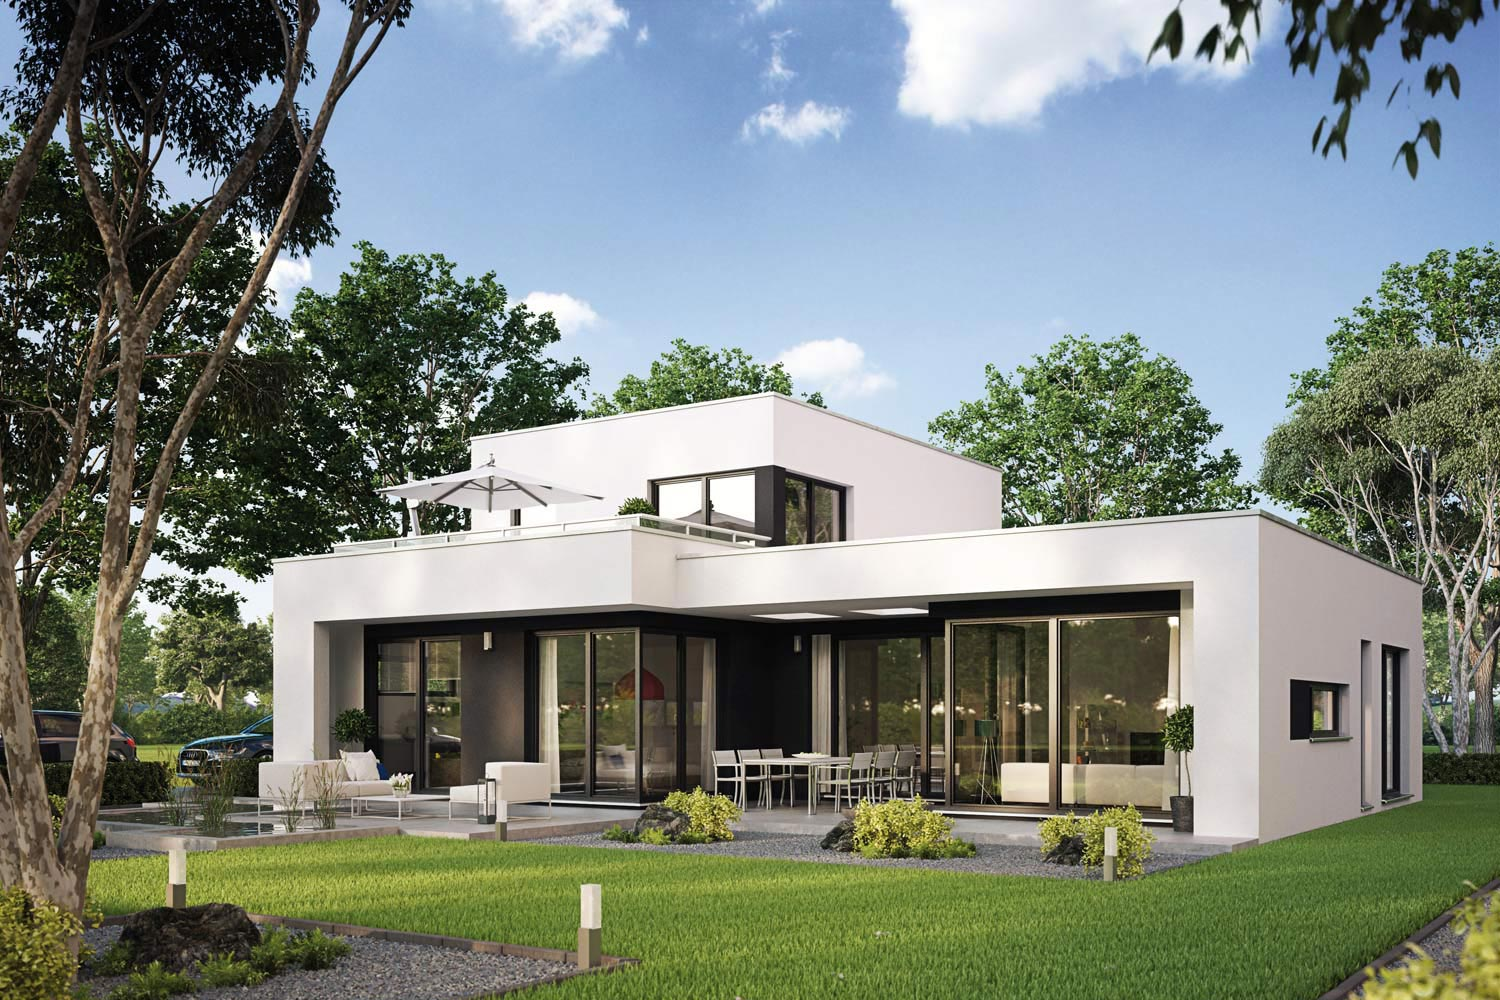 Architekten-Haus Casaretto | Fertighaus | Bungalow